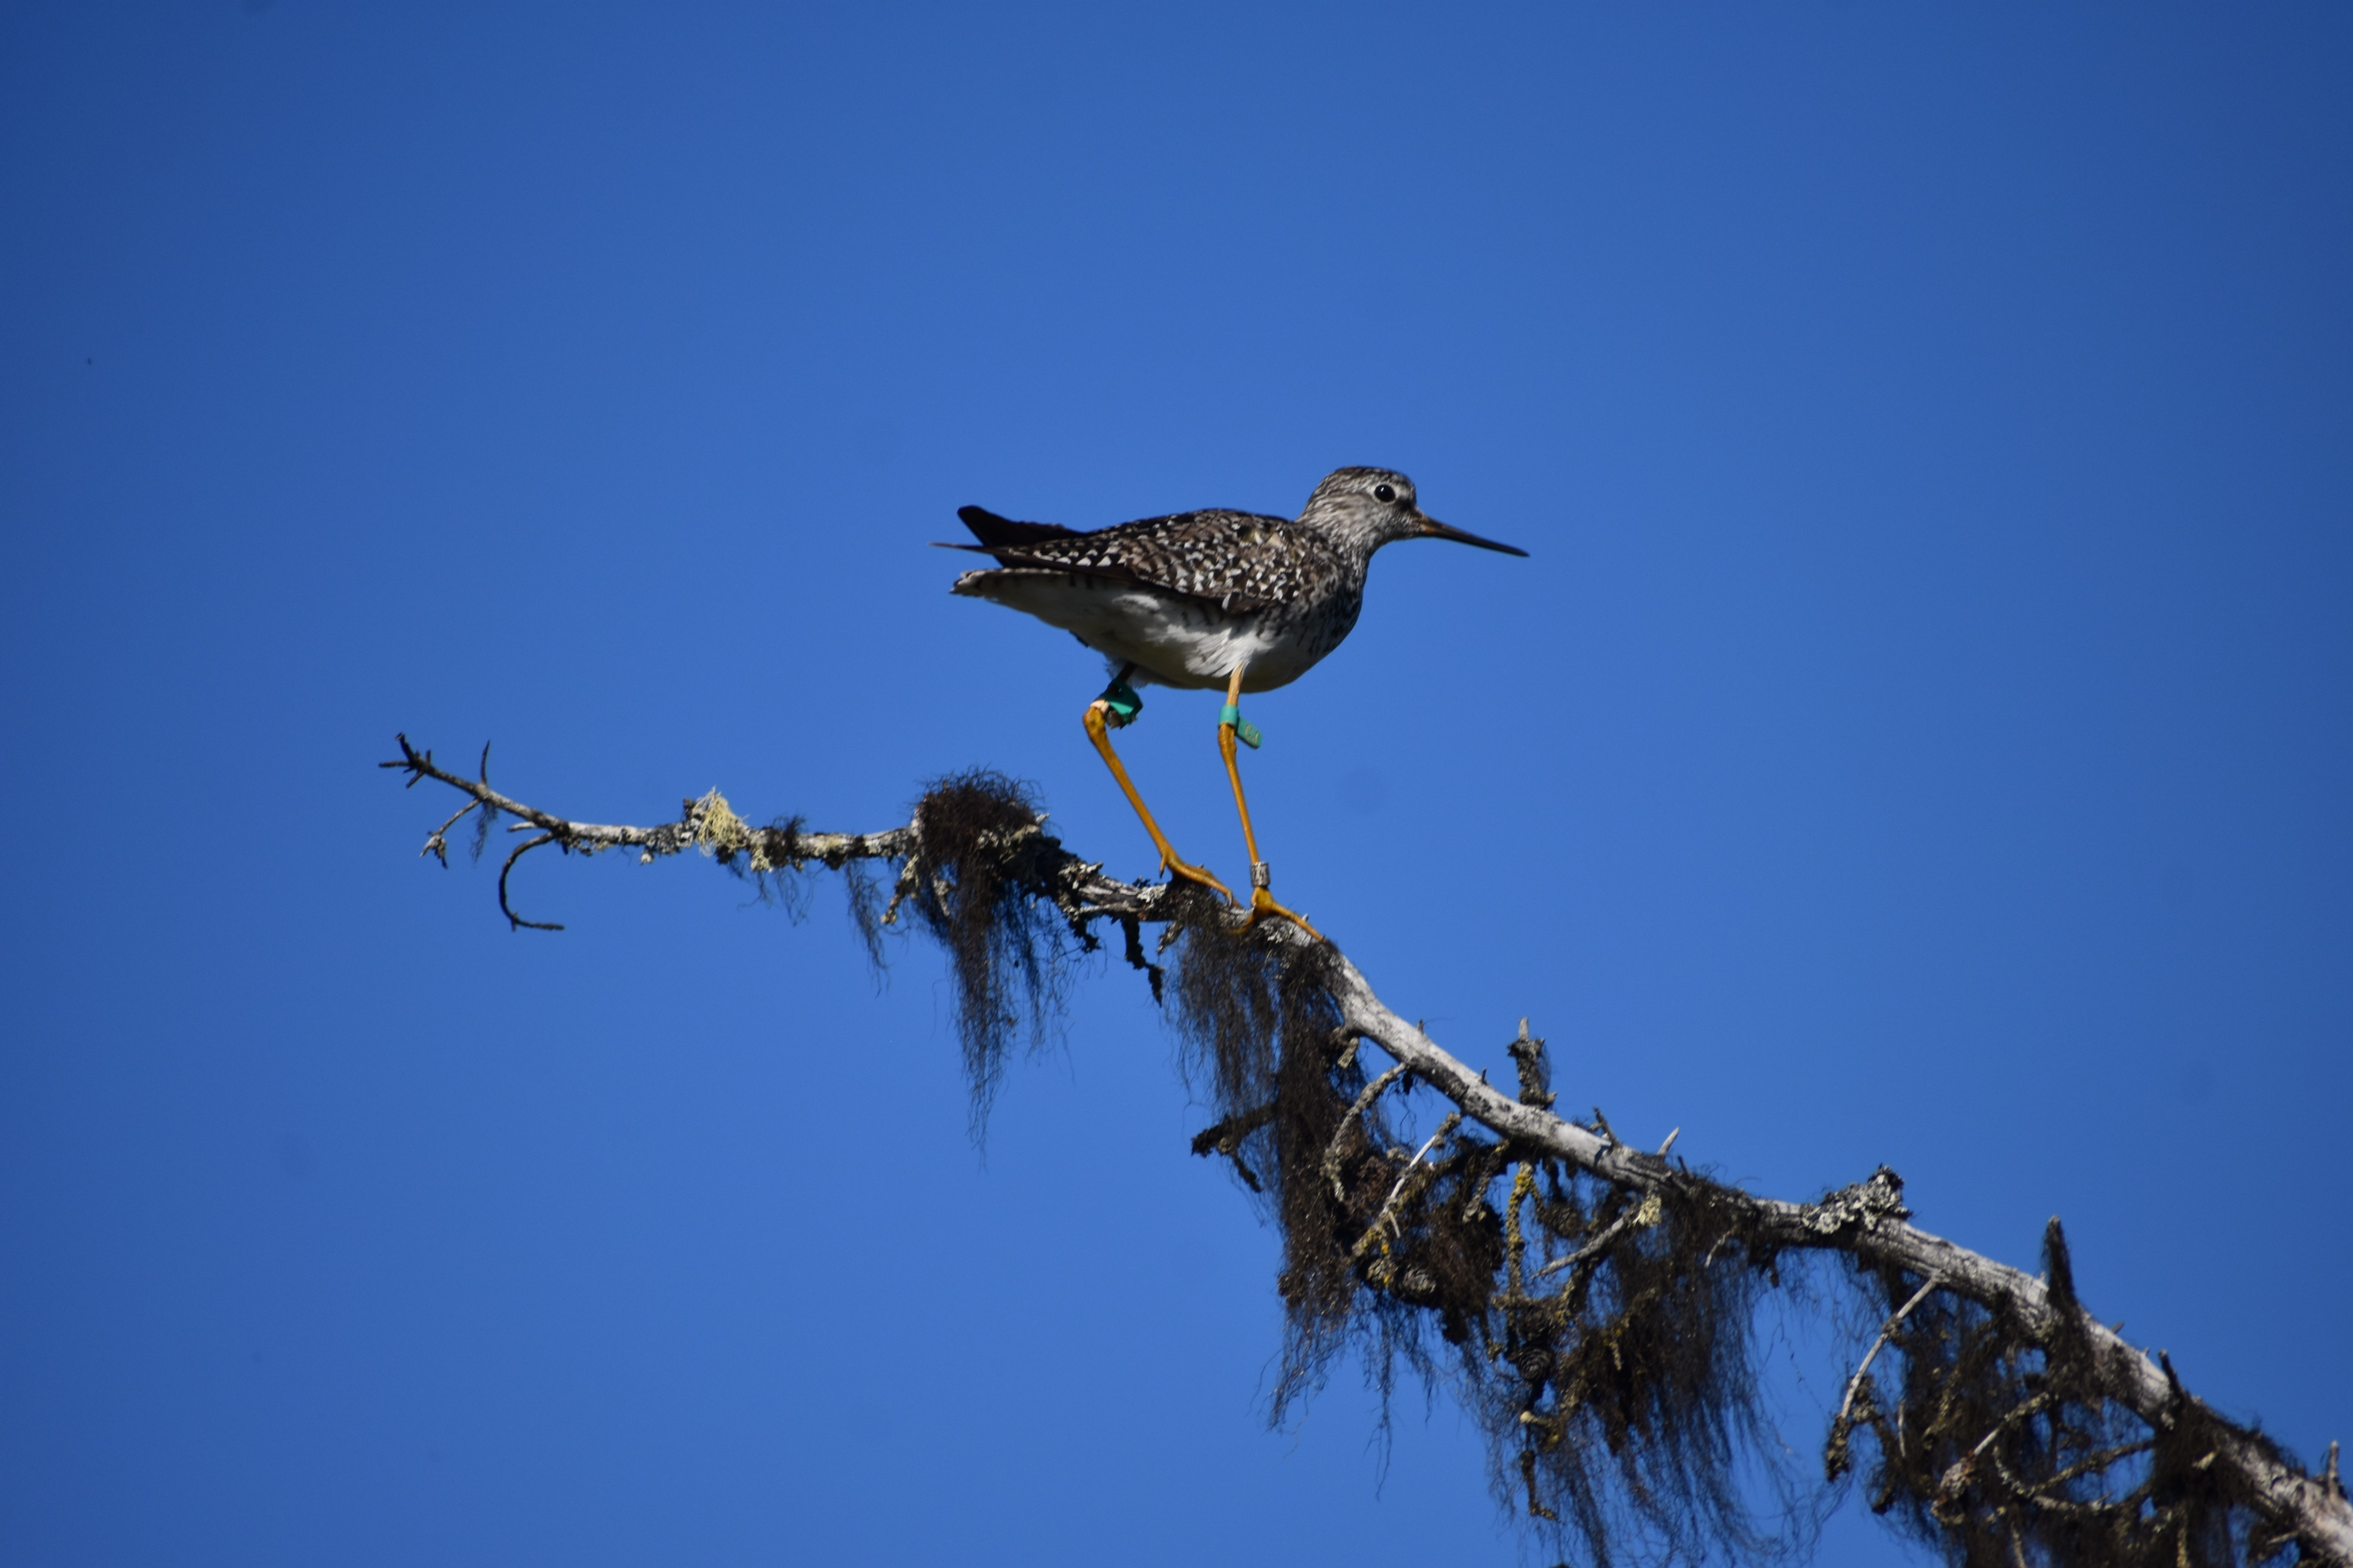 A lesser yellowlegs with leg bands perches on a branch